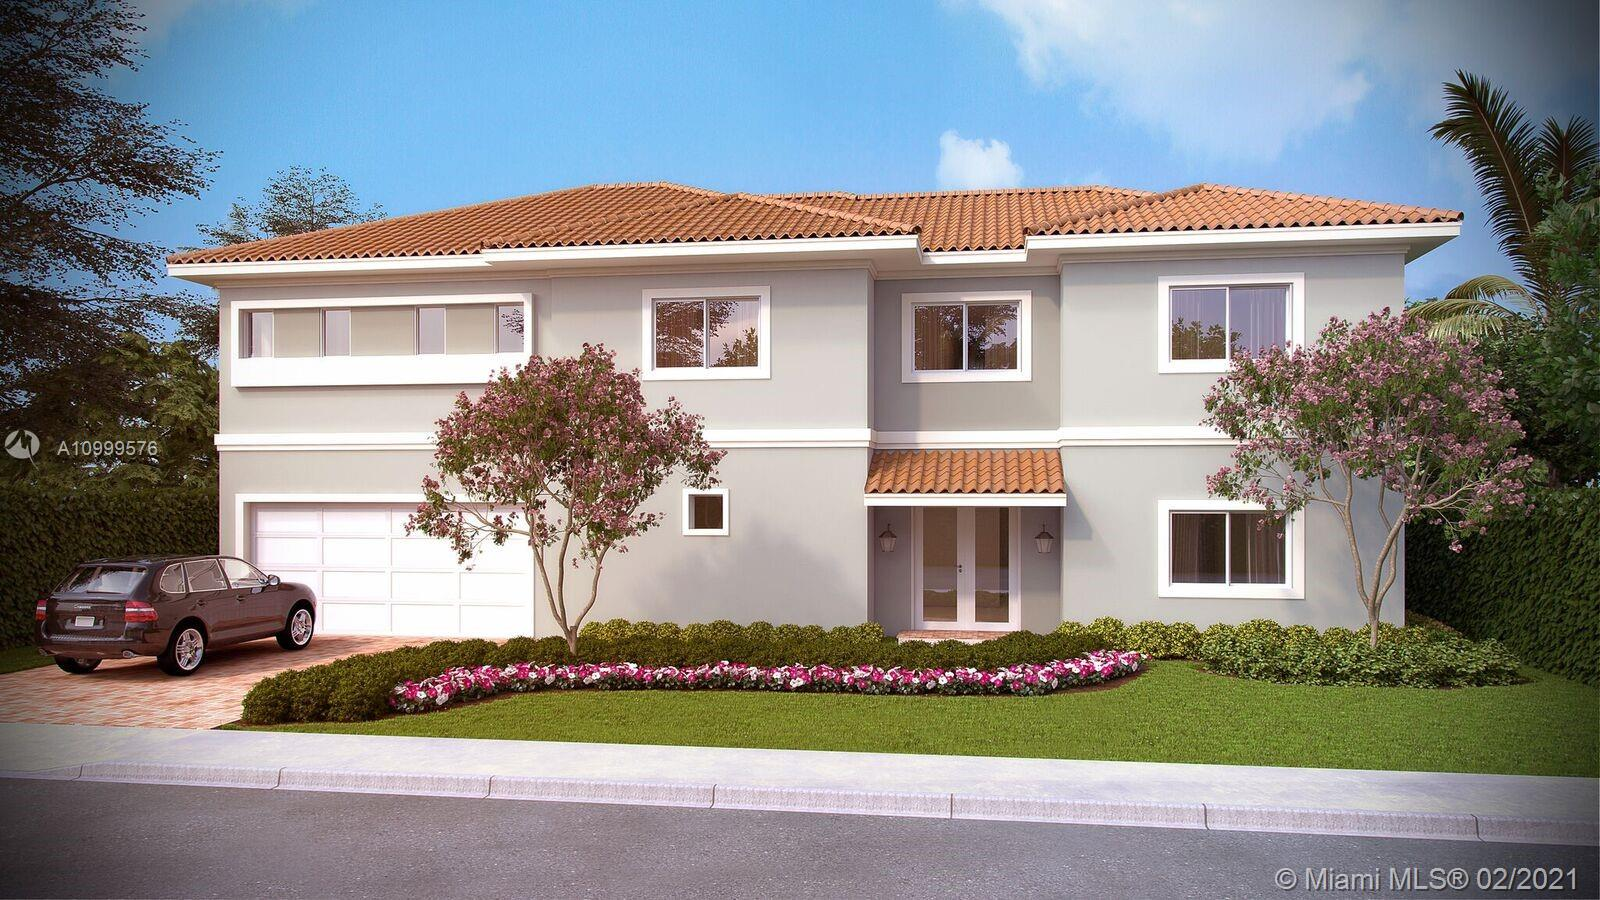 PRE CONSTRUCTION OFFERING OF LOT 29 AT FOREST VIEW ESTATES. FIRST OFFERING OF THE CYPRESS MODEL. ESTIMATED COMPLETION 2022. FOREST VIEW ESTATES IS AN EXCLUSIVE DEVELOPMENT, LOCATED IN THE EMERLAD HILLS AREA. THIS IS A GATED COMMUNITY OF EXECUTIVE STYLE HOMES, A BOUTIQUE COMMUNITY of 31 TOTLA HOMES, WITH 2 PEDESTRAIN GATES. THIS HOME IS 5 BEDROOMS WITH A LOFT OR 6 BEDROOMS, WITH 4 FULL BATHS. OPTIONS AND UPGRADES CAN BE SELECTED PRE CONSTRUCTION AND ADDED TO THE BASE PRICE. THIS CAN ACCOMODATE A OPTION UPGRADED POOL. ONLY 4 CYPRESS MODES TO BE BUILT. LOCATED IN THE HEART OF EMERALD HILLS, CLOSE TO SHOPPING, SCHOOLS, NUMEROUS HOUSES OF WORSHIP, THE HARD ROCK ENTERTAINMENT COMPLEX AND MORE.